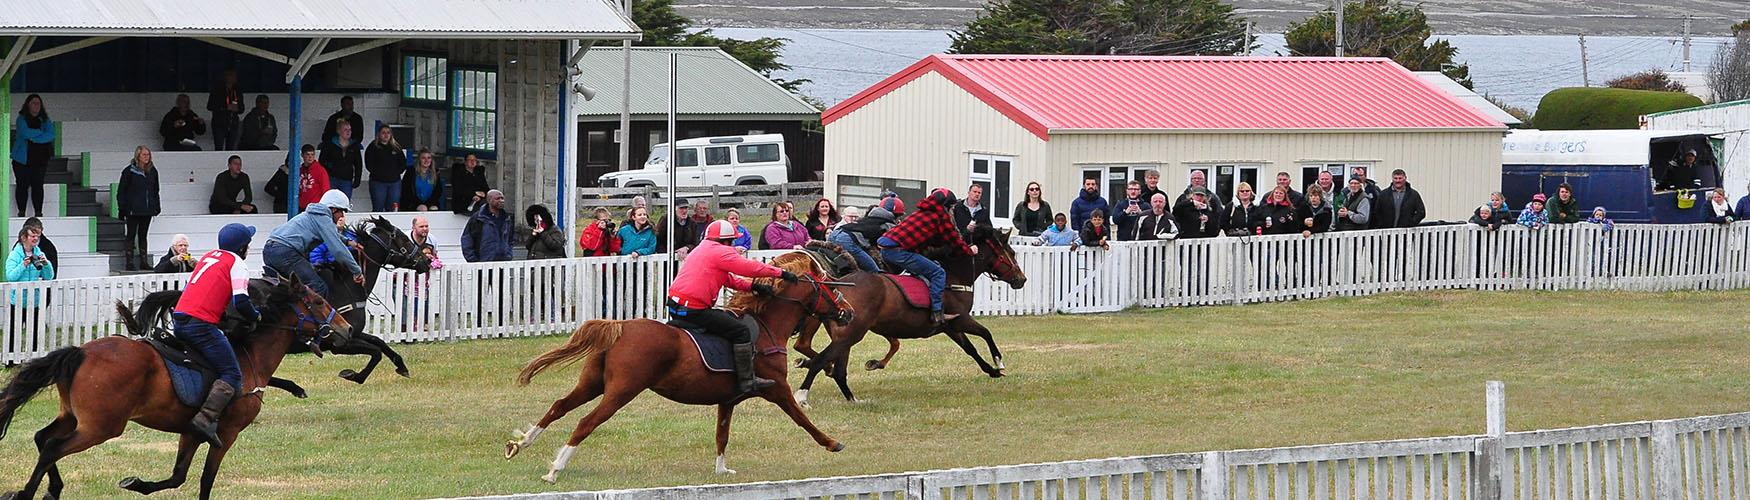 Christmas races at Stanley Racecourse, Falkland Islands